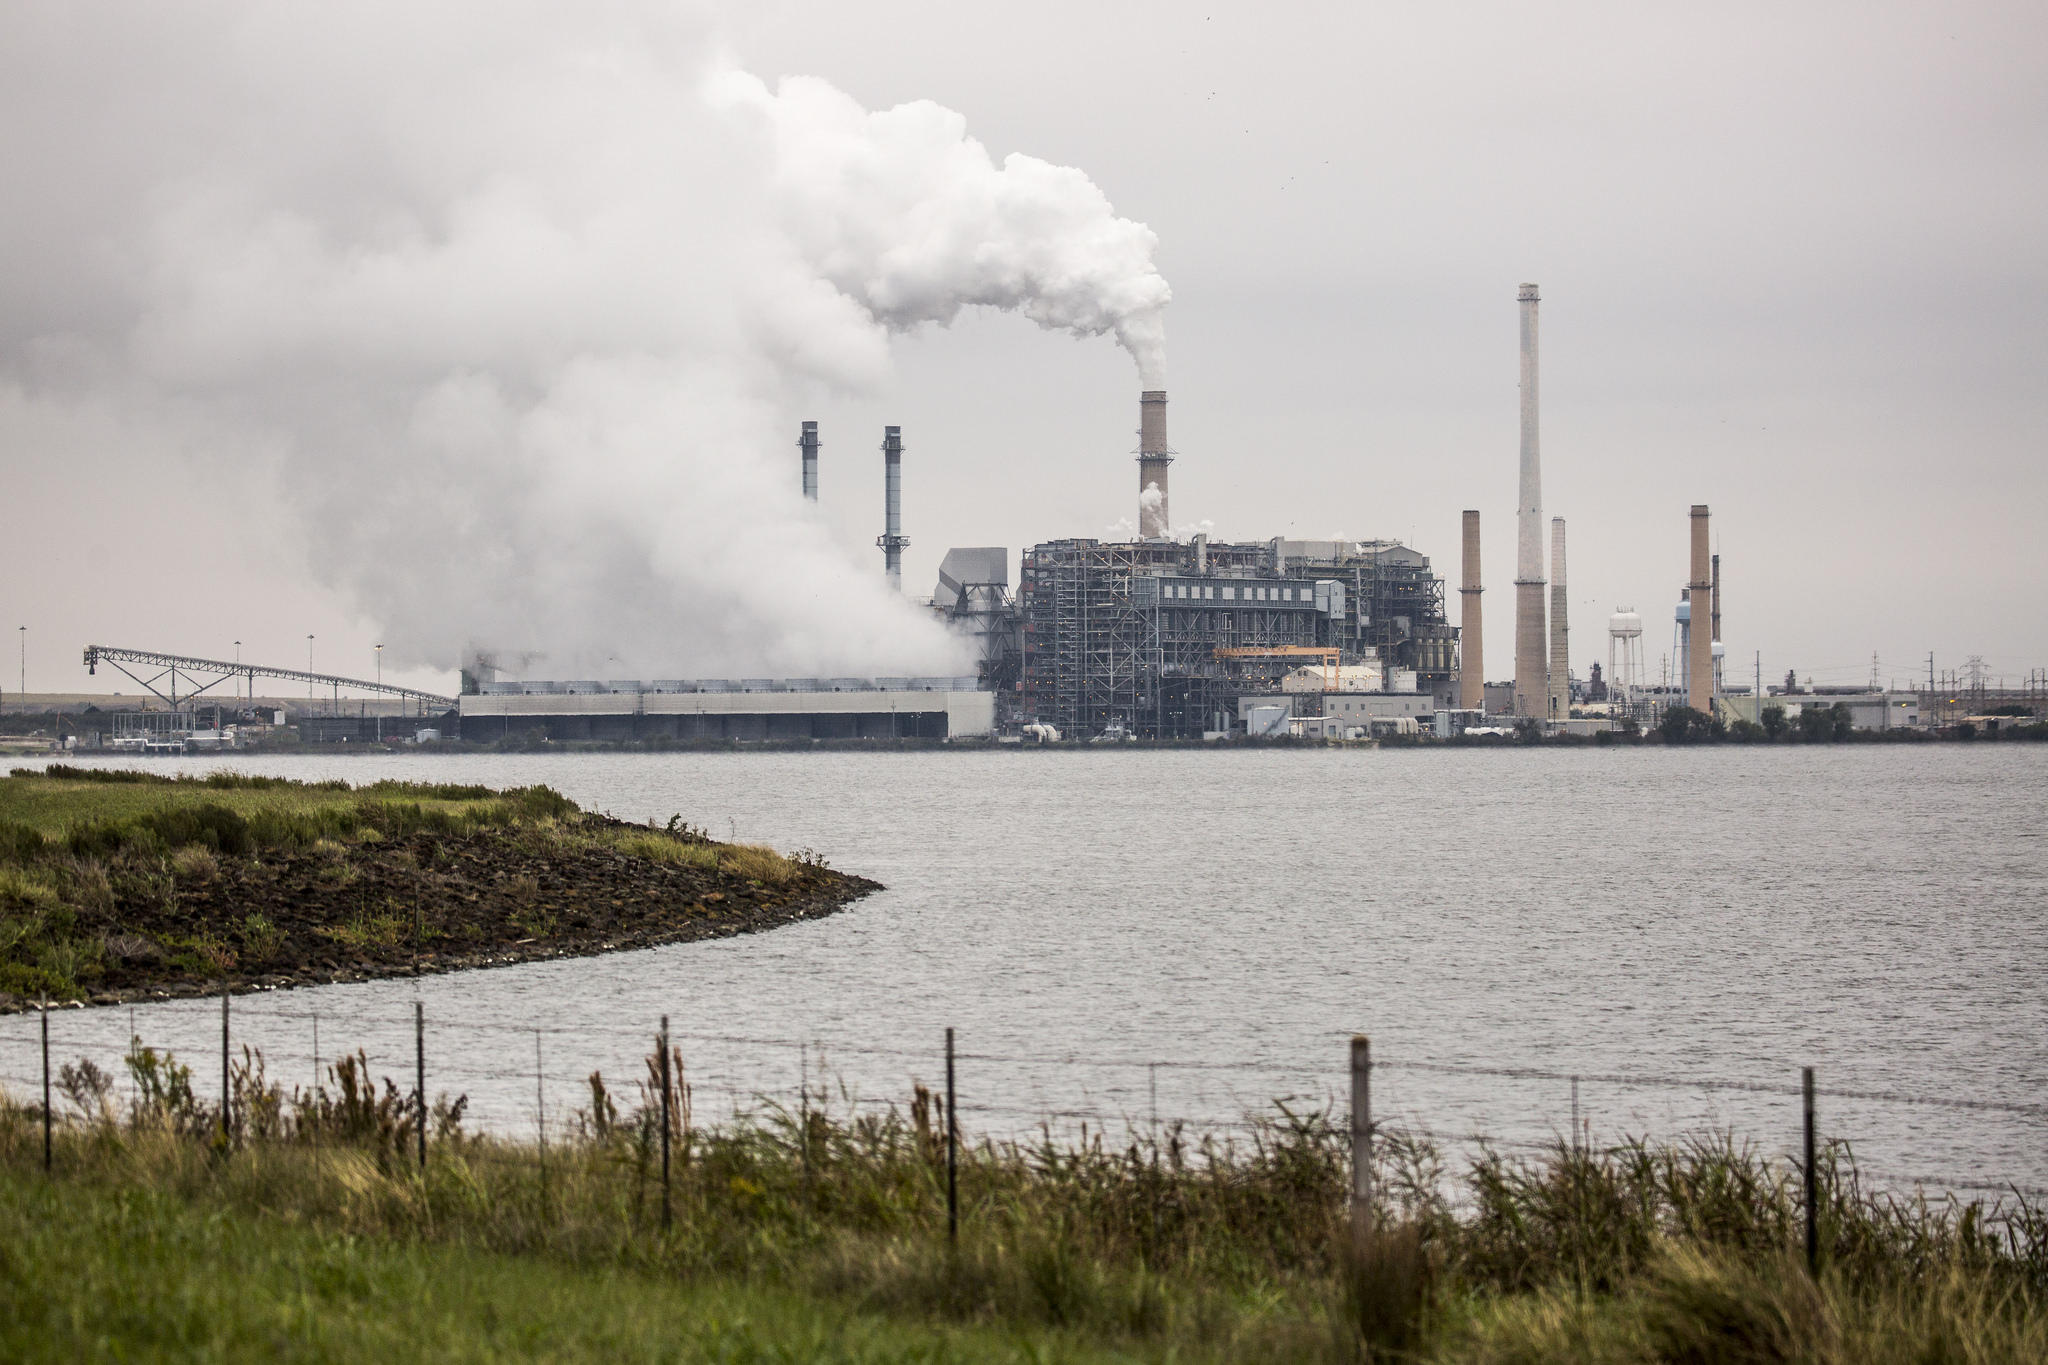 The Sandow Plant Outside Rockdale Is One Of Three Coal Plants In Texas Slated To Close Next Year